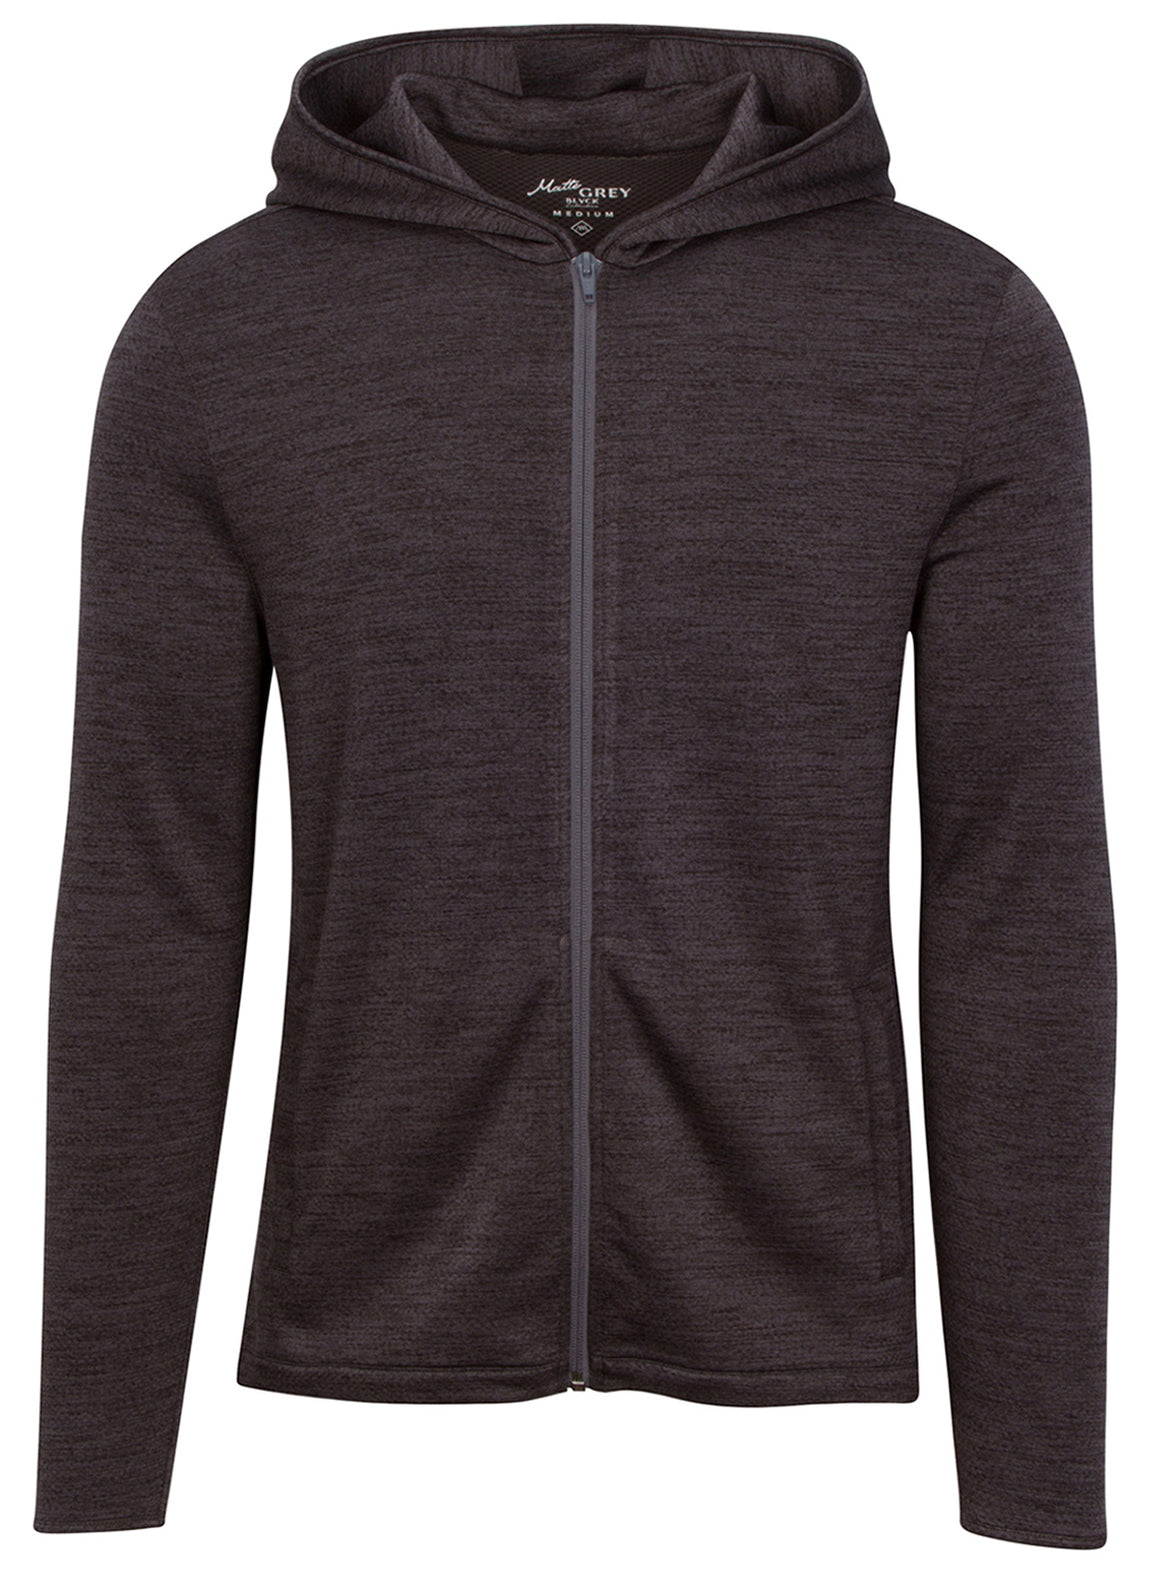 ZV Hoodie - Black Heather